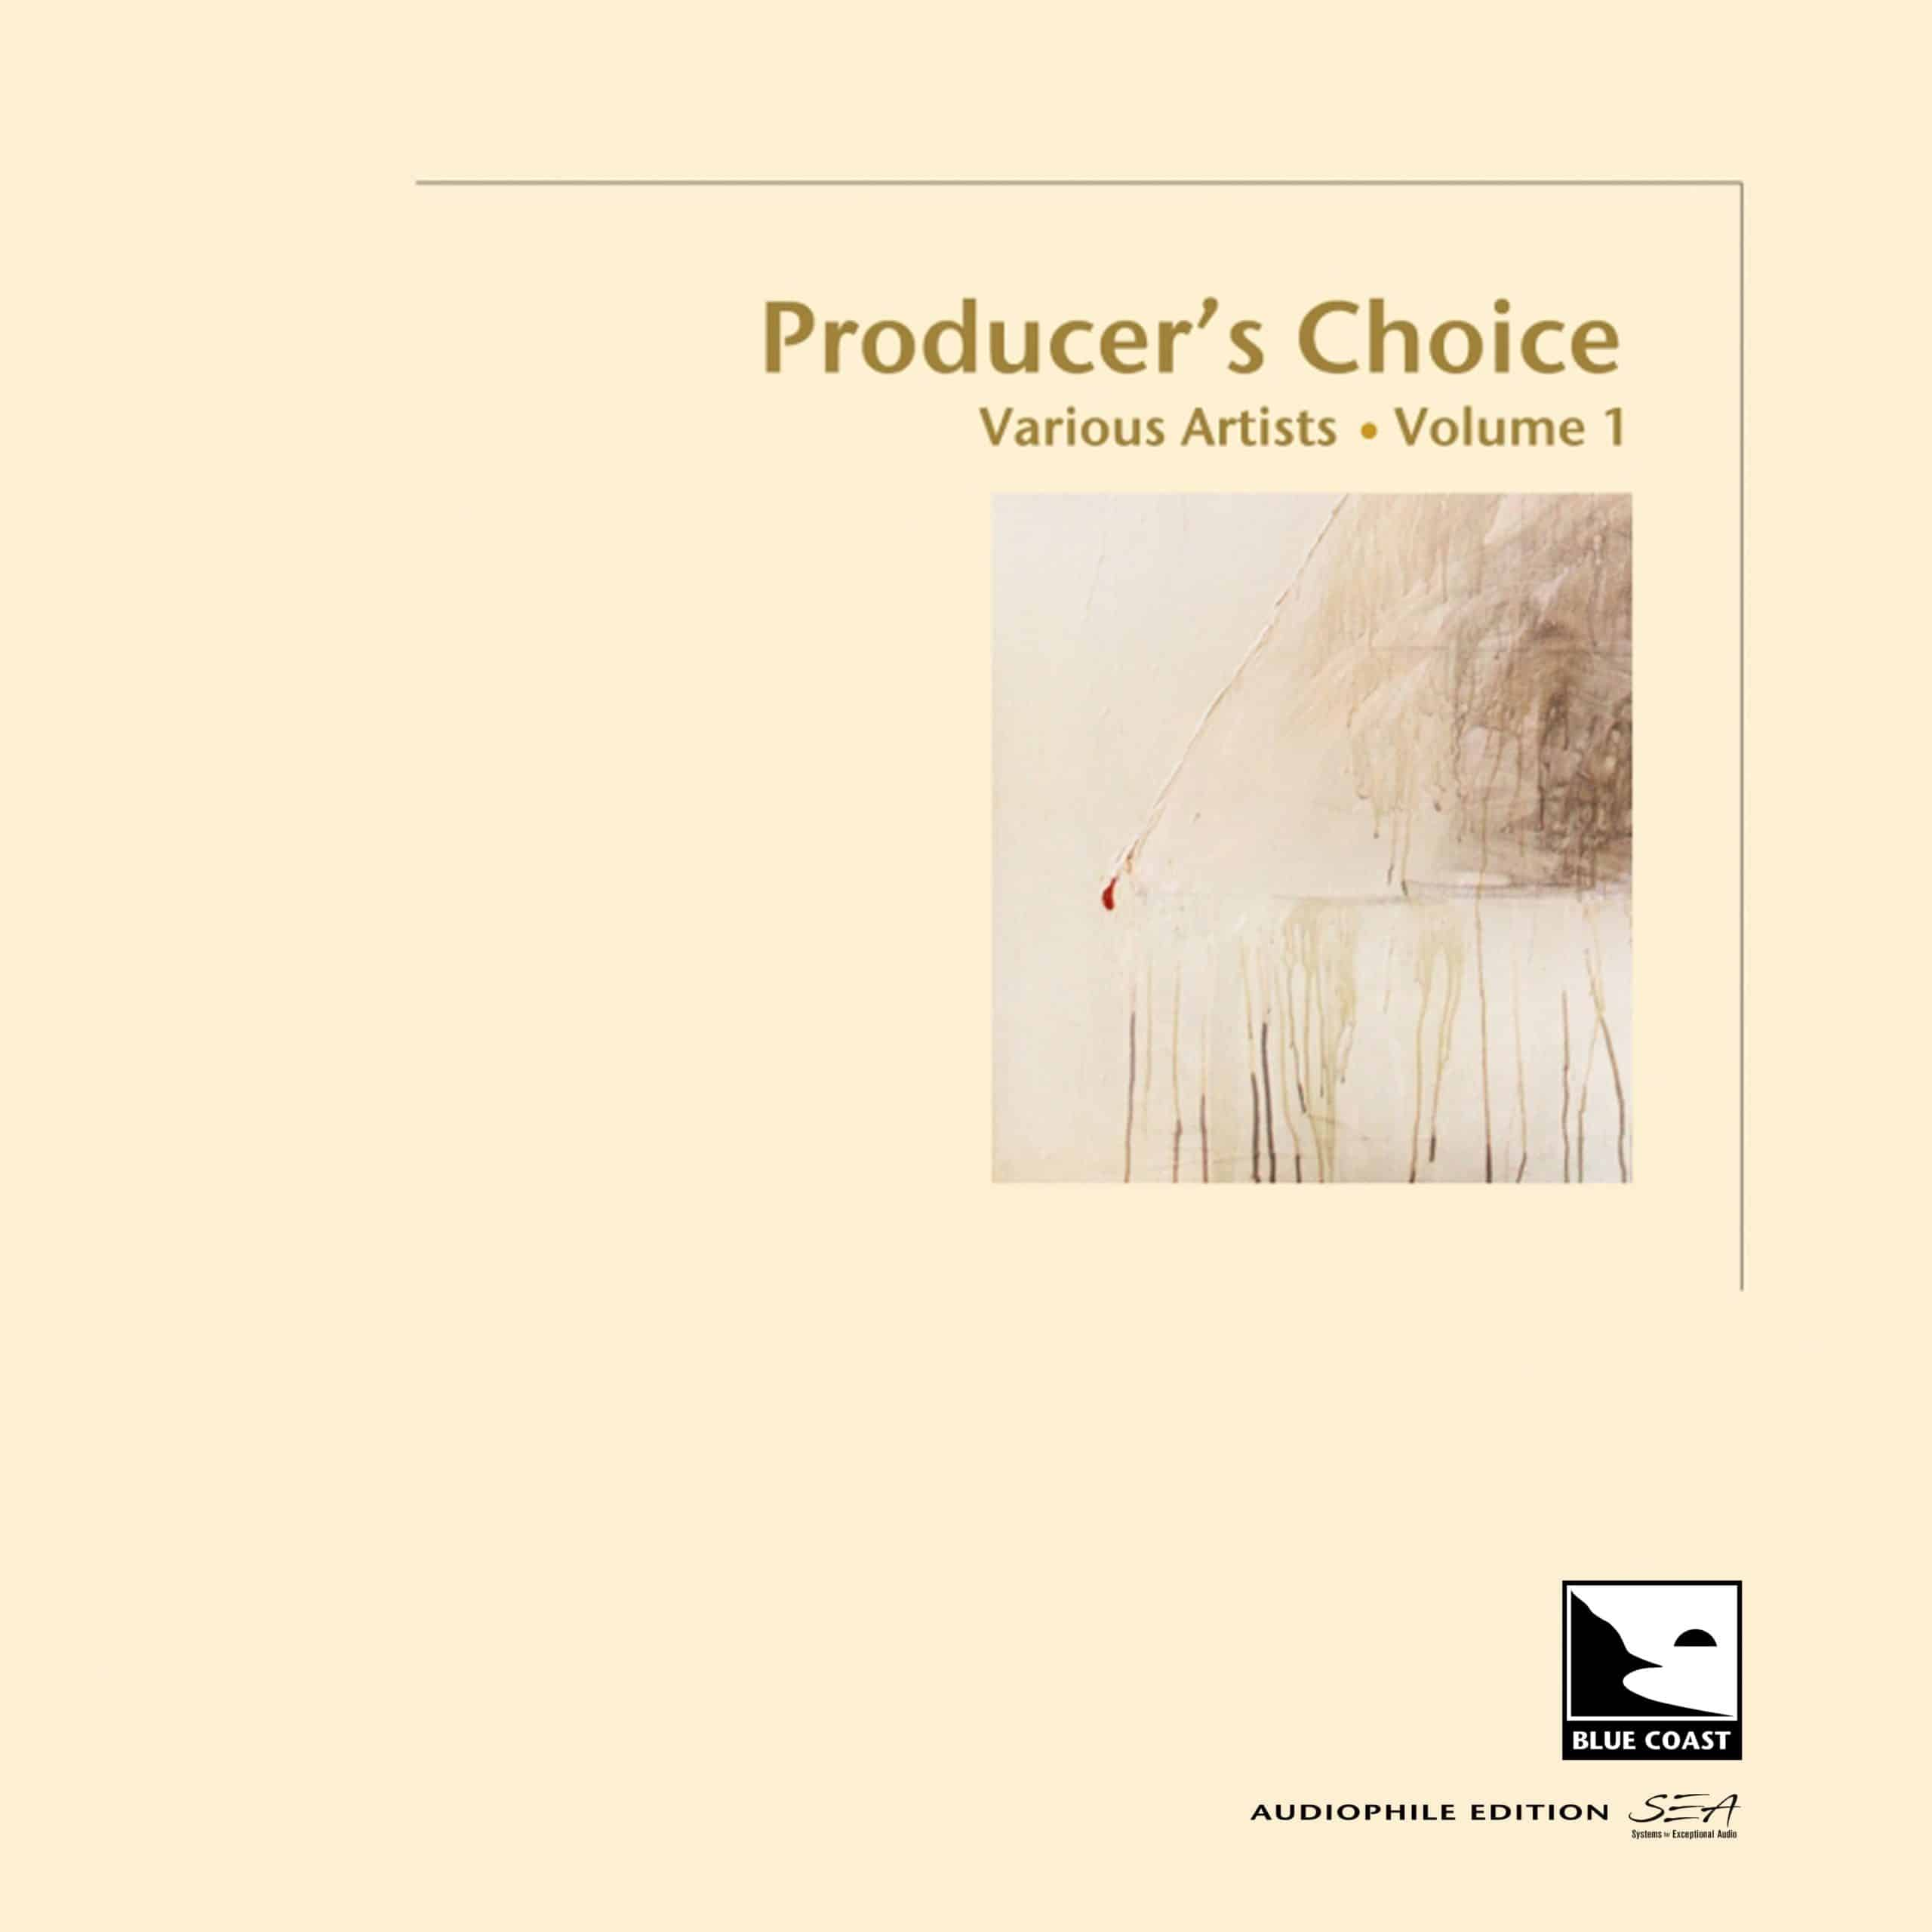 Producer's Choice